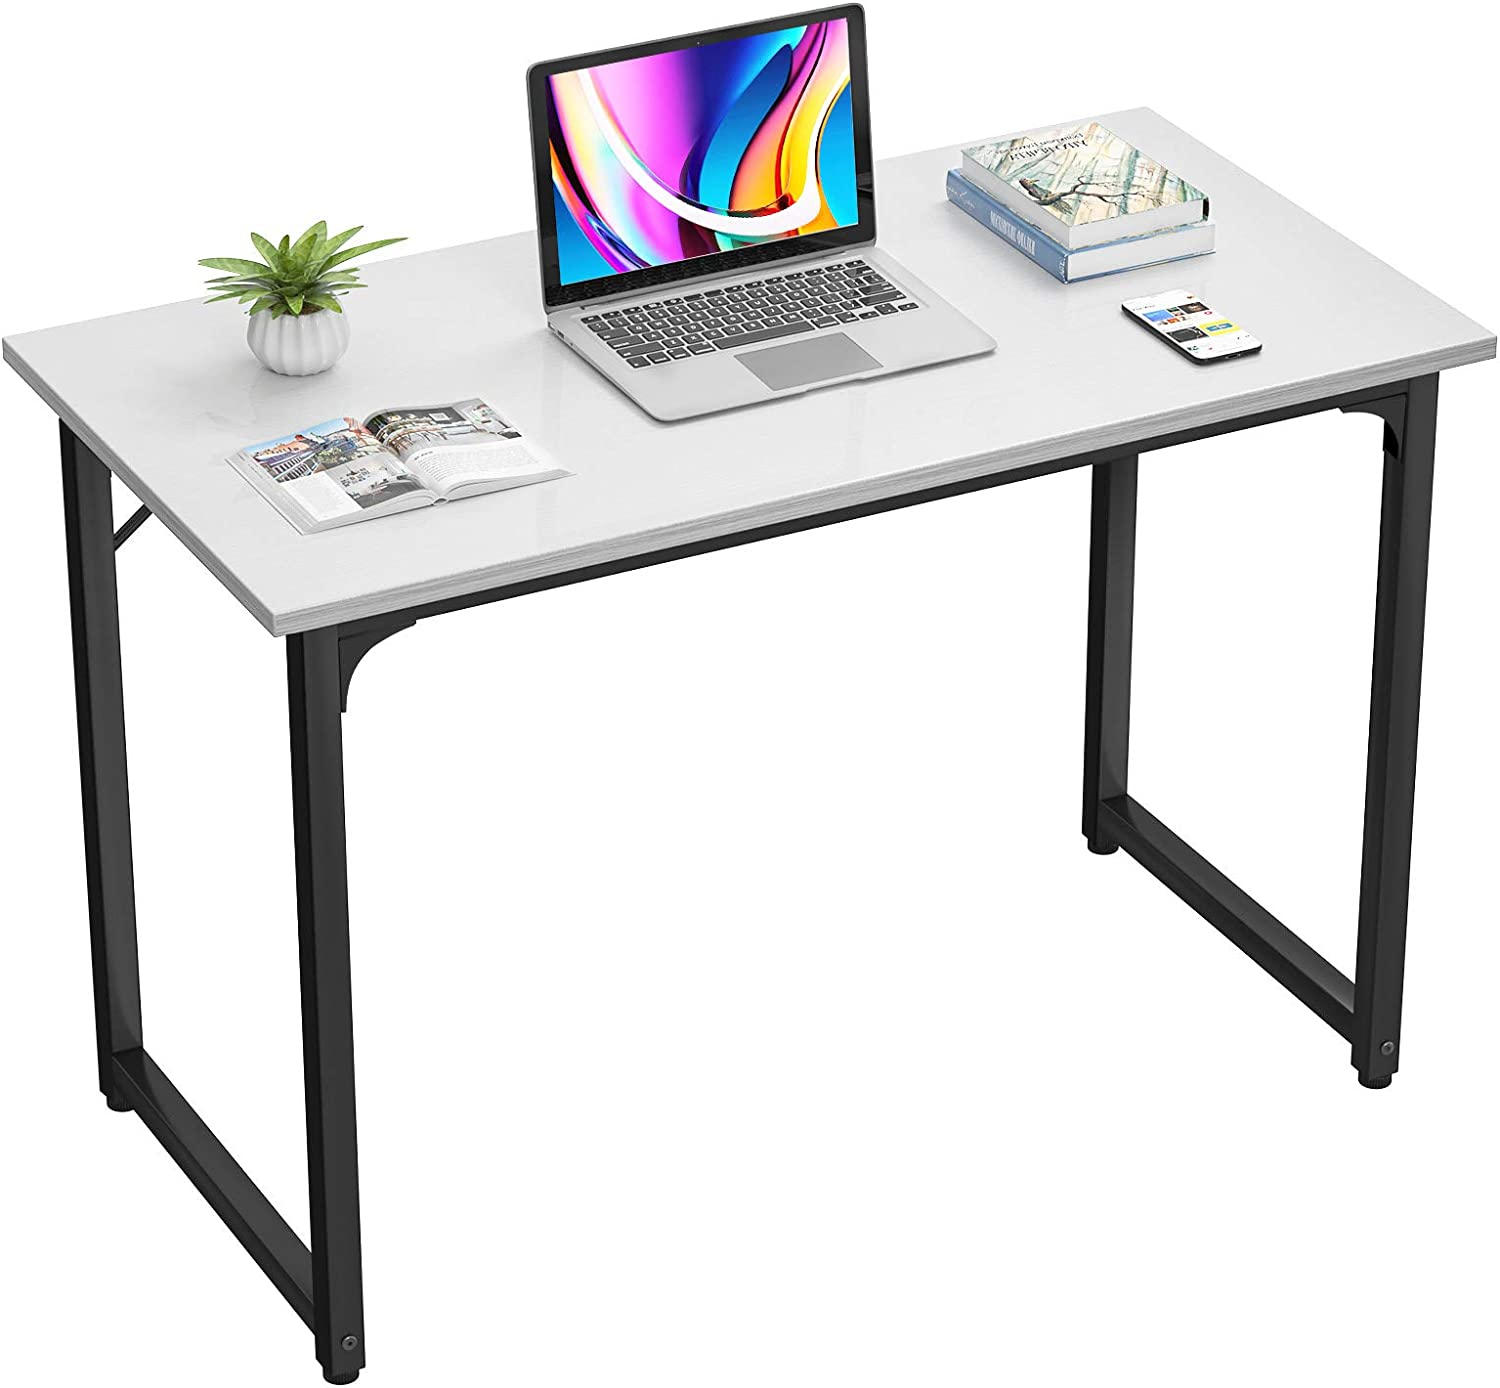 Homfio Computer Desk 32 Inch Study Writing Home Office Desks, Multi-Usage Modern Simple Sturdy PC Laptop Table, Space Saving Workstation Wood Work Desk for Small Space, Easy to Assemble, White